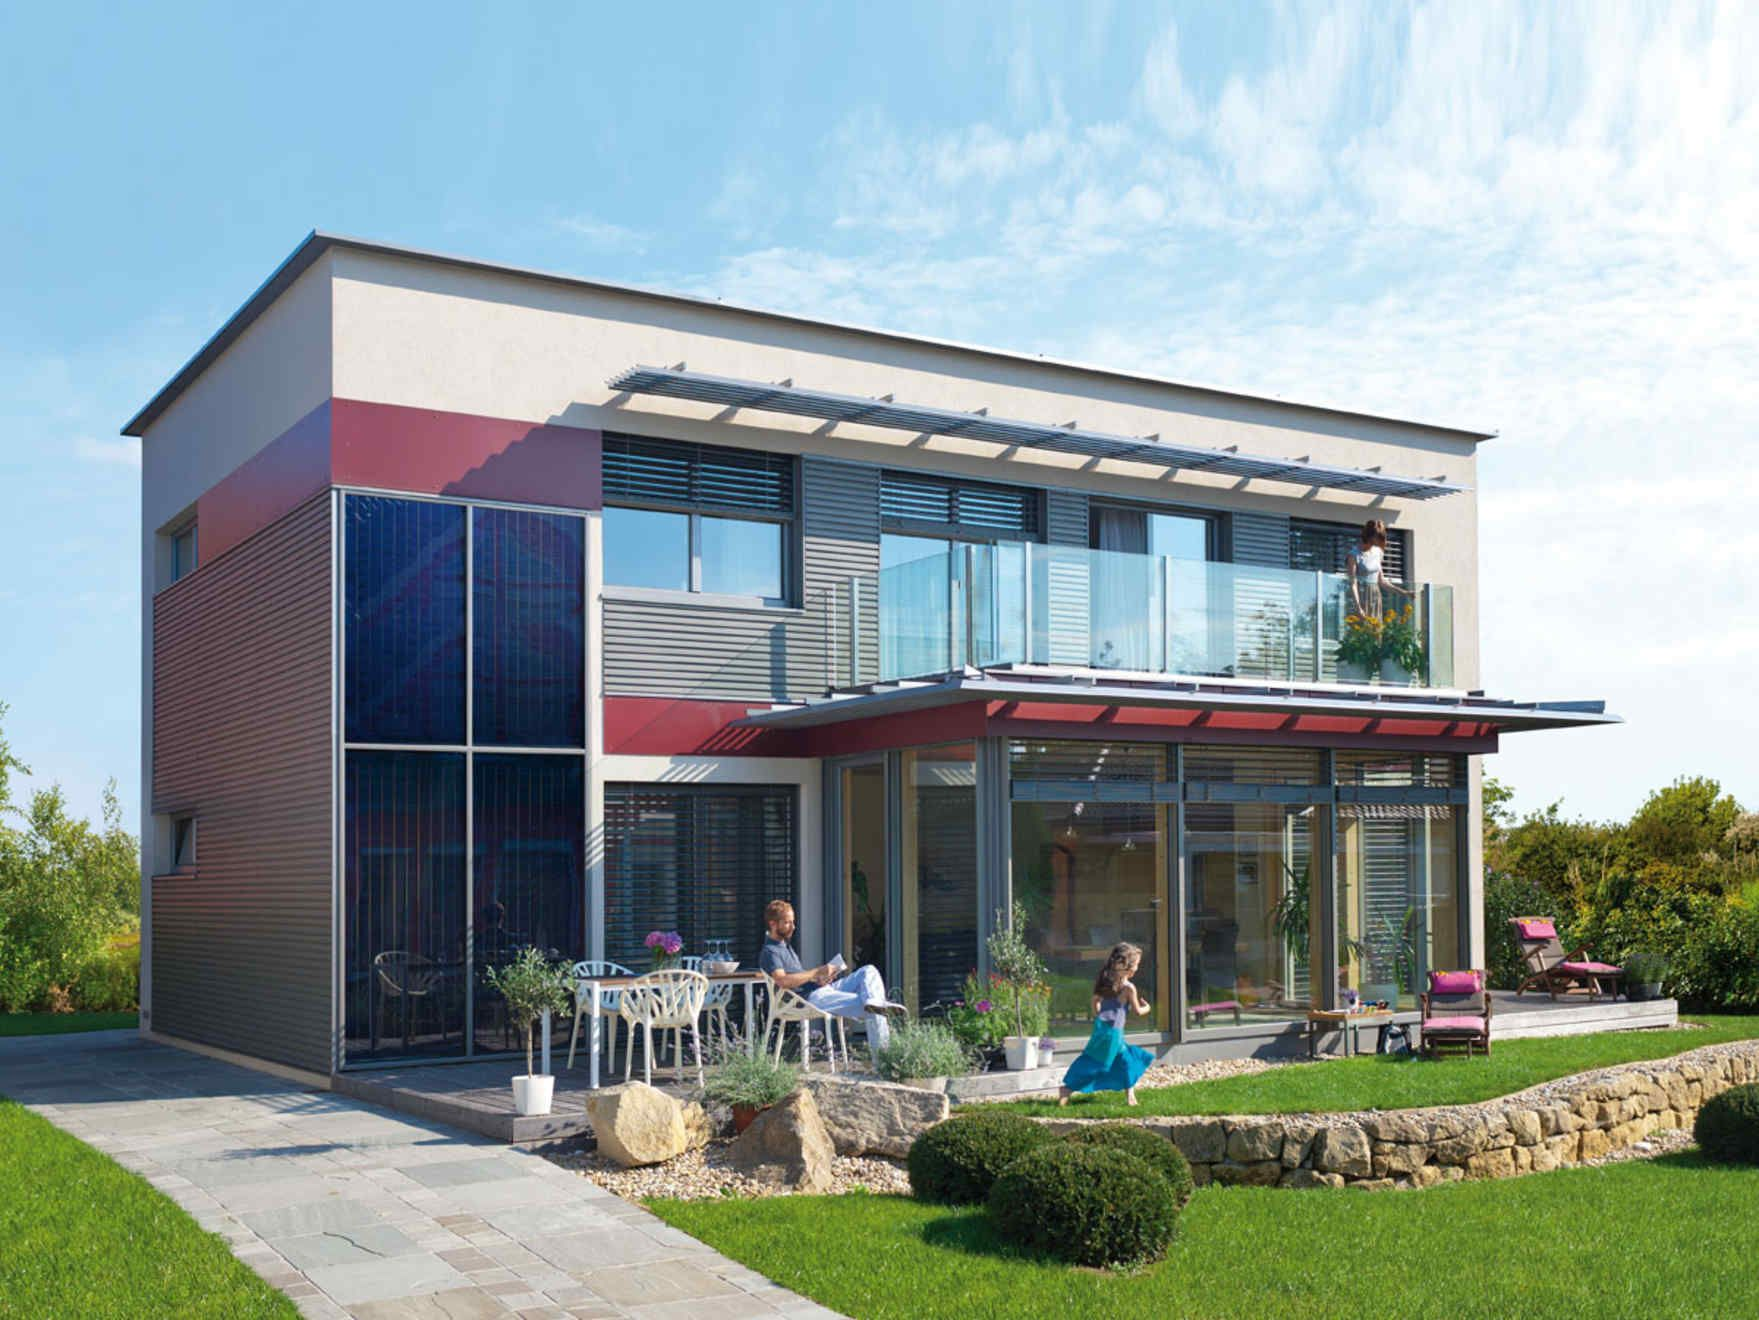 Beautiful Modern Property Variations Ever More Popular In Such A Period Of Time, And  This Ein Haus Mit Positiver Energie Bauen Pic Stock Moreover Can Provide A  Great ...